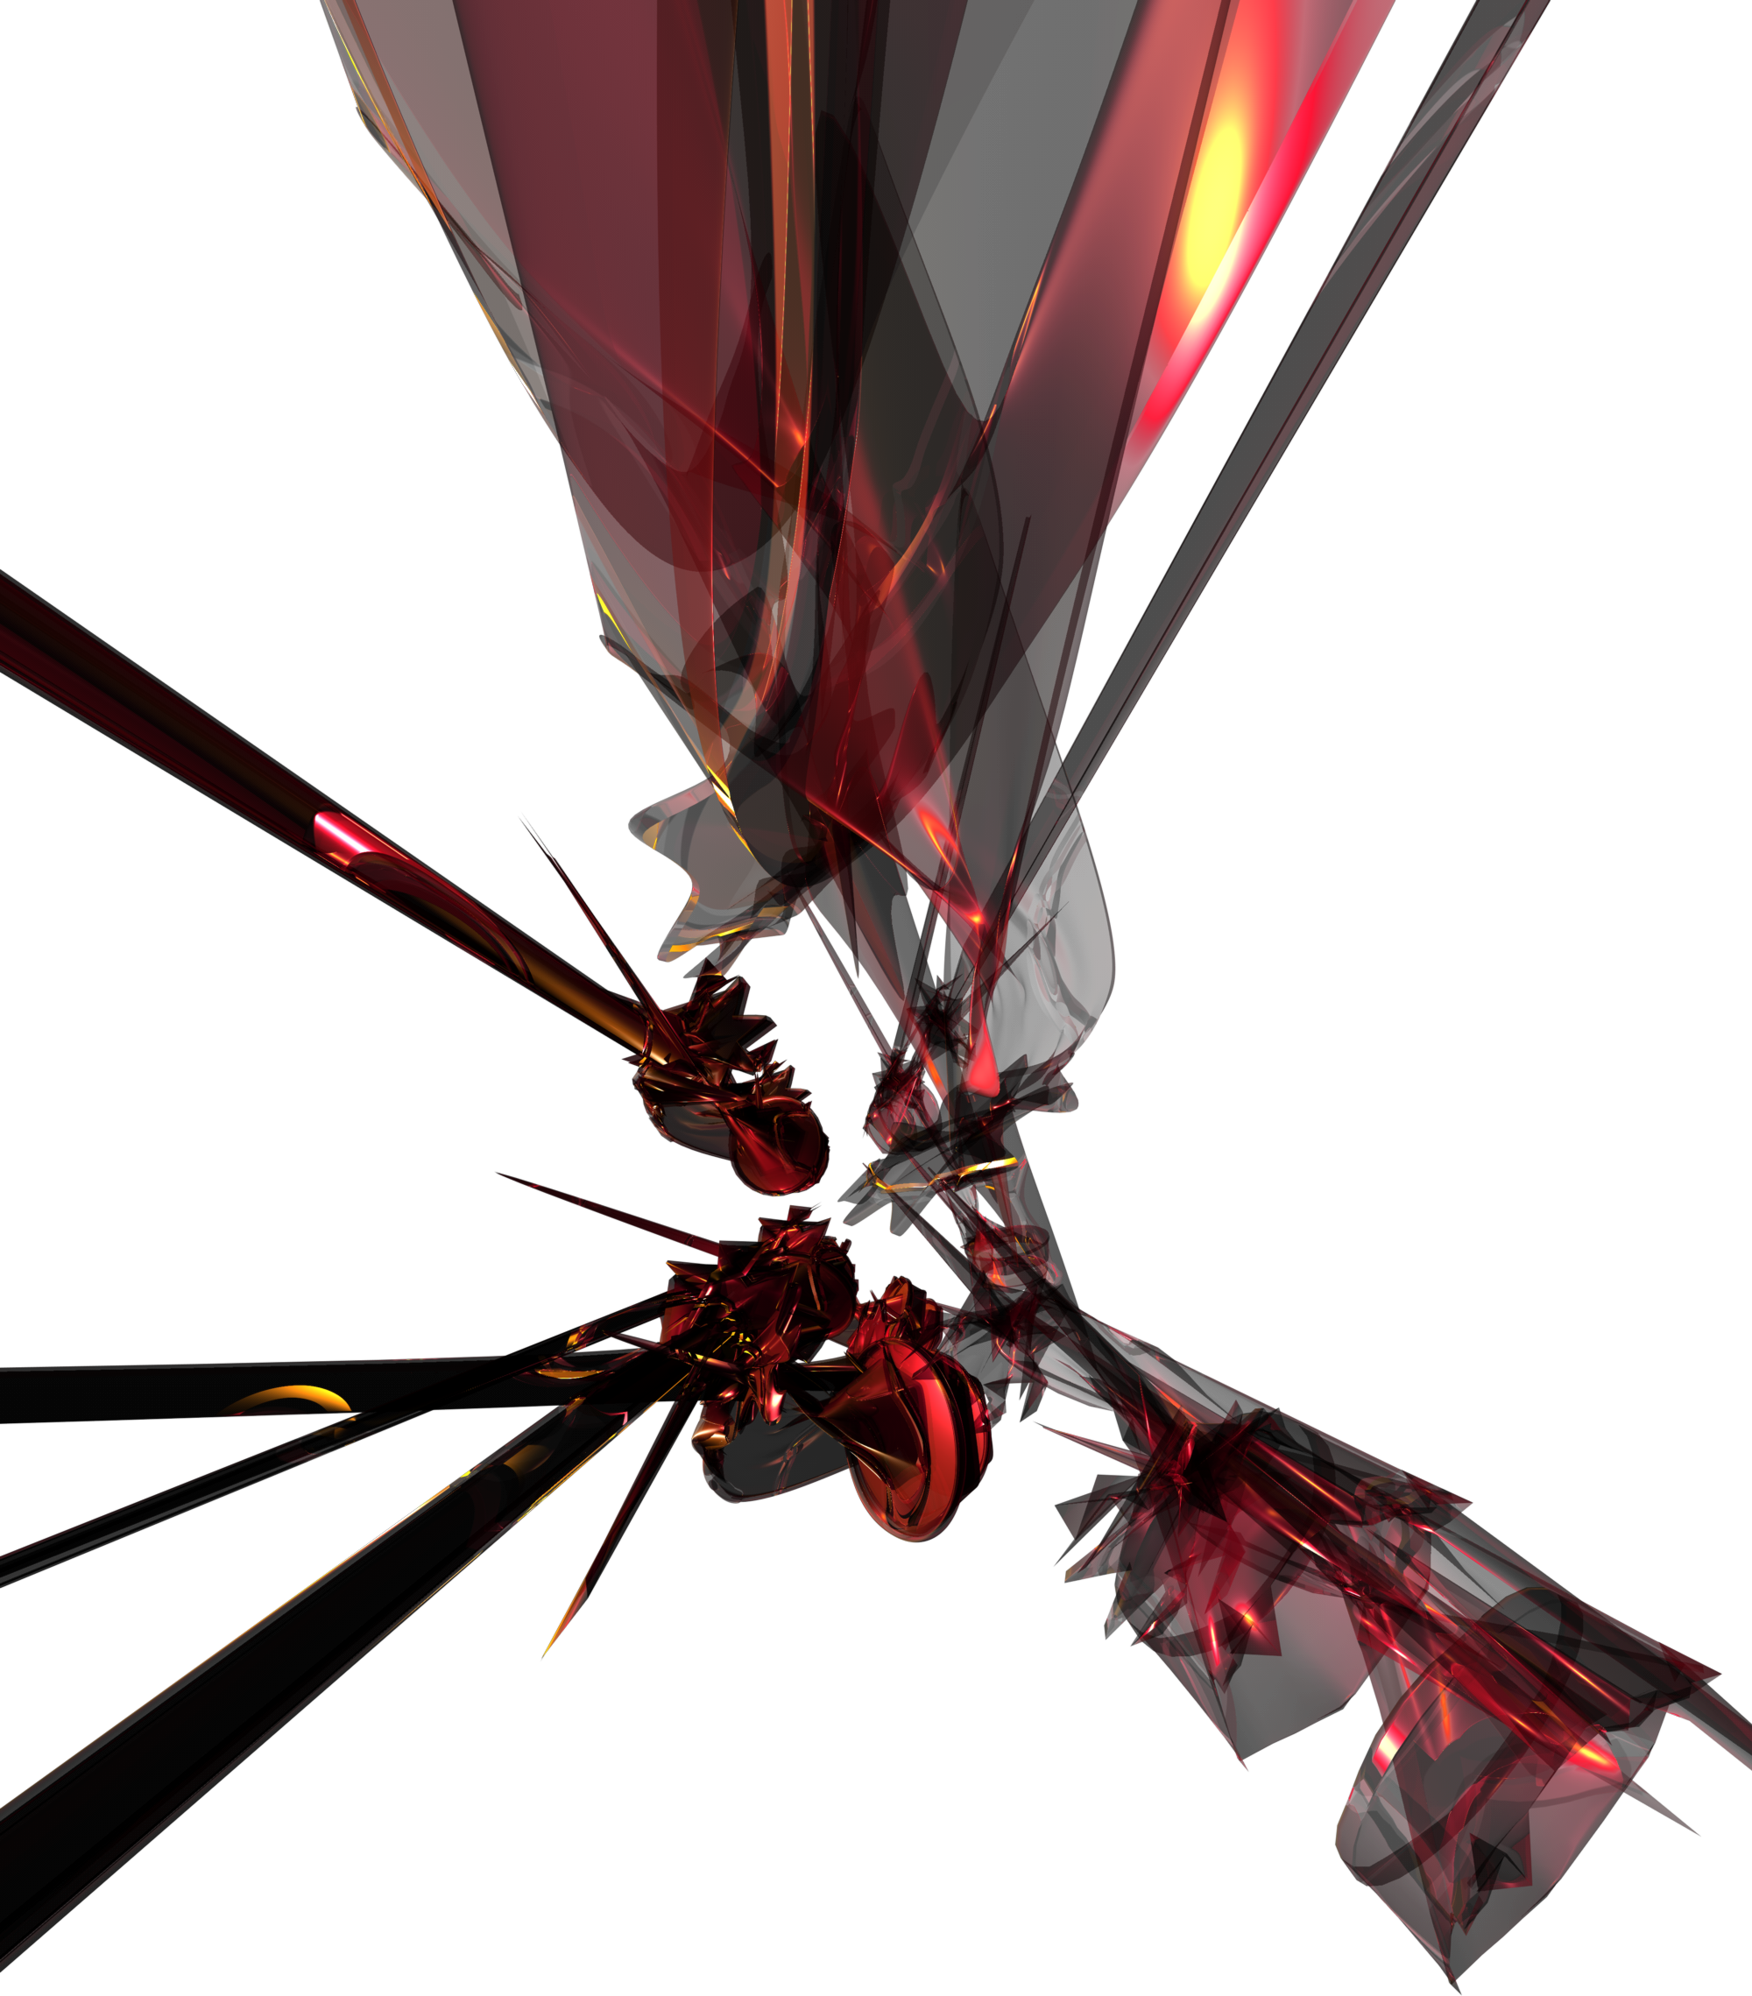 rY 1 - Abstract 3D Render by stinky666 on DeviantArt